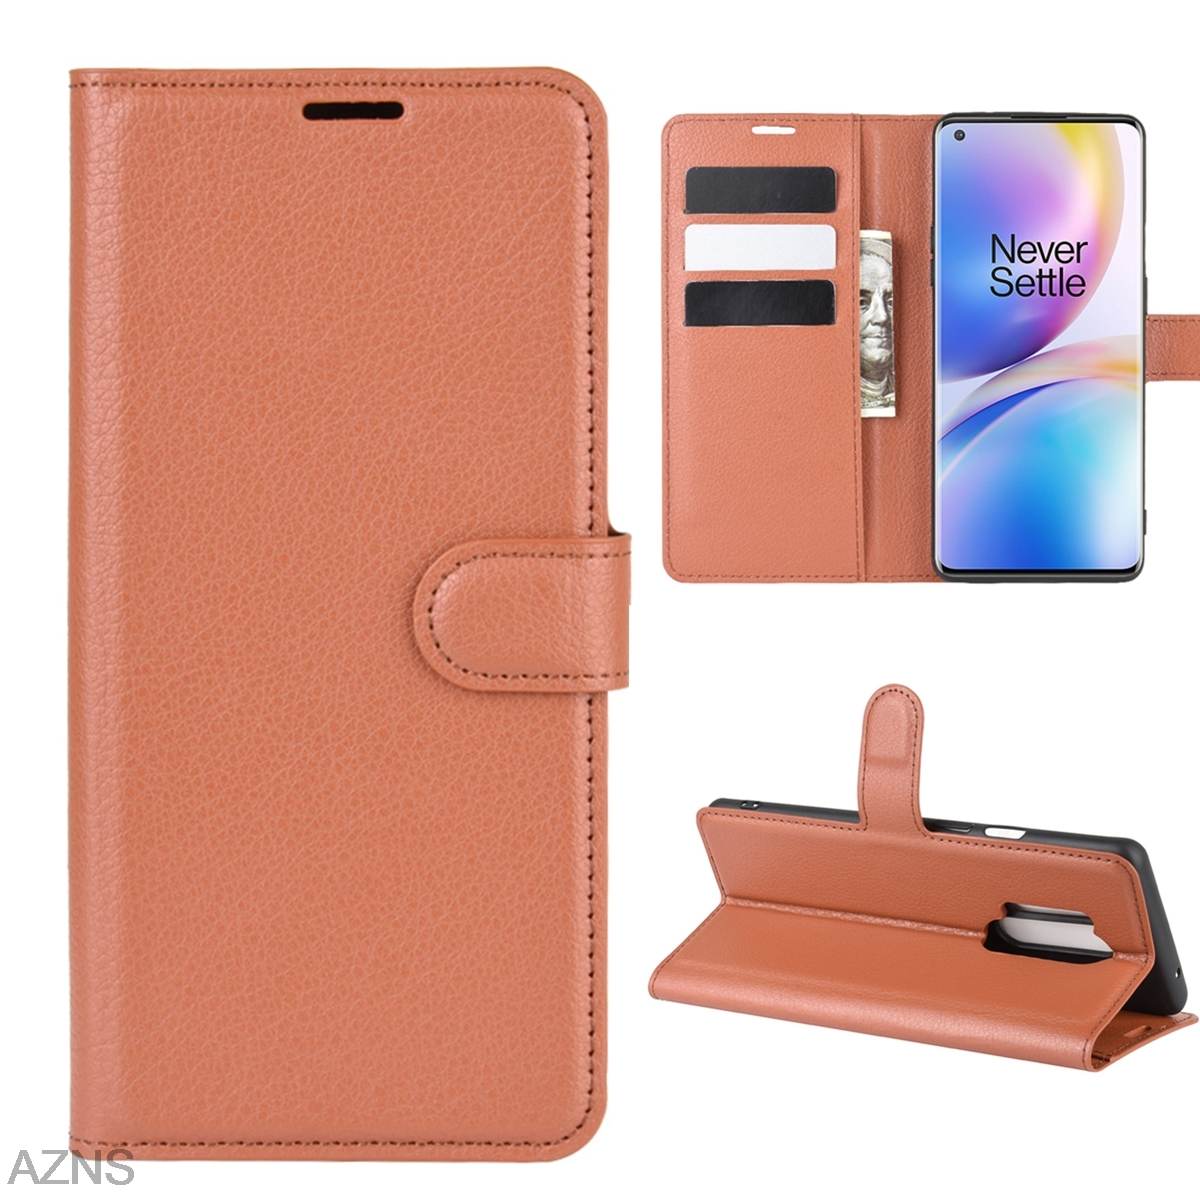 <font><b>Wallet</b></font> Cover Card Holder Phone <font><b>Cases</b></font> for <font><b>Oneplus</b></font> 8 Pro 7 7T Pro 6 6T 5 5T Pu Leather <font><b>Case</b></font> Protective <font><b>Case</b></font> for <font><b>Oneplus</b></font> 1 <font><b>2</b></font> 3 3T image